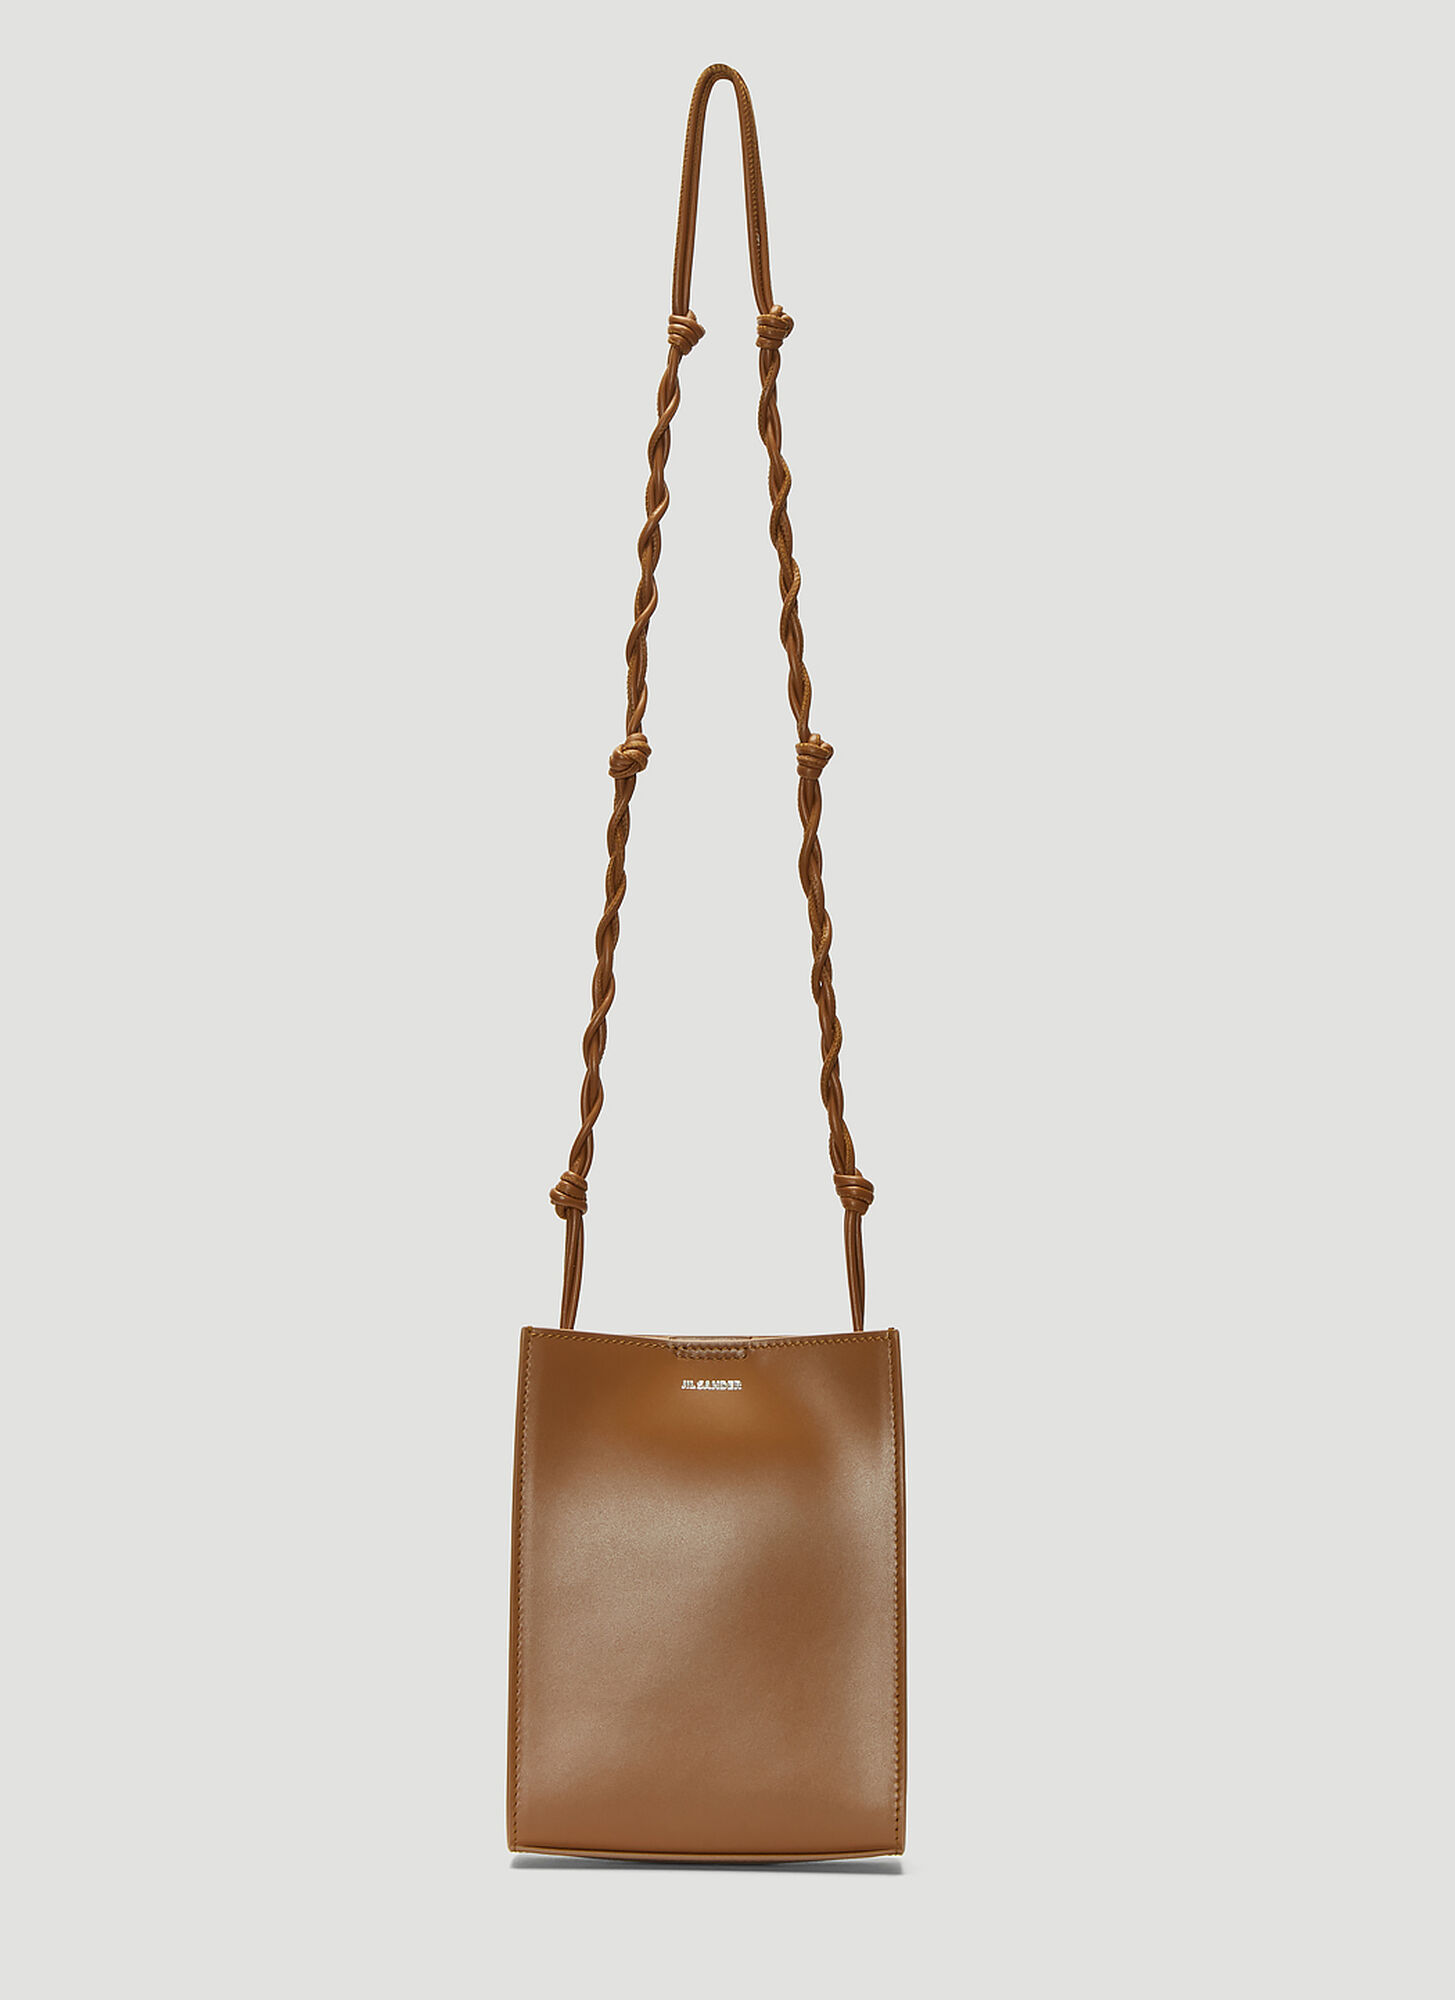 Jil Sander Tangle Small Shoulder Bag in Brown